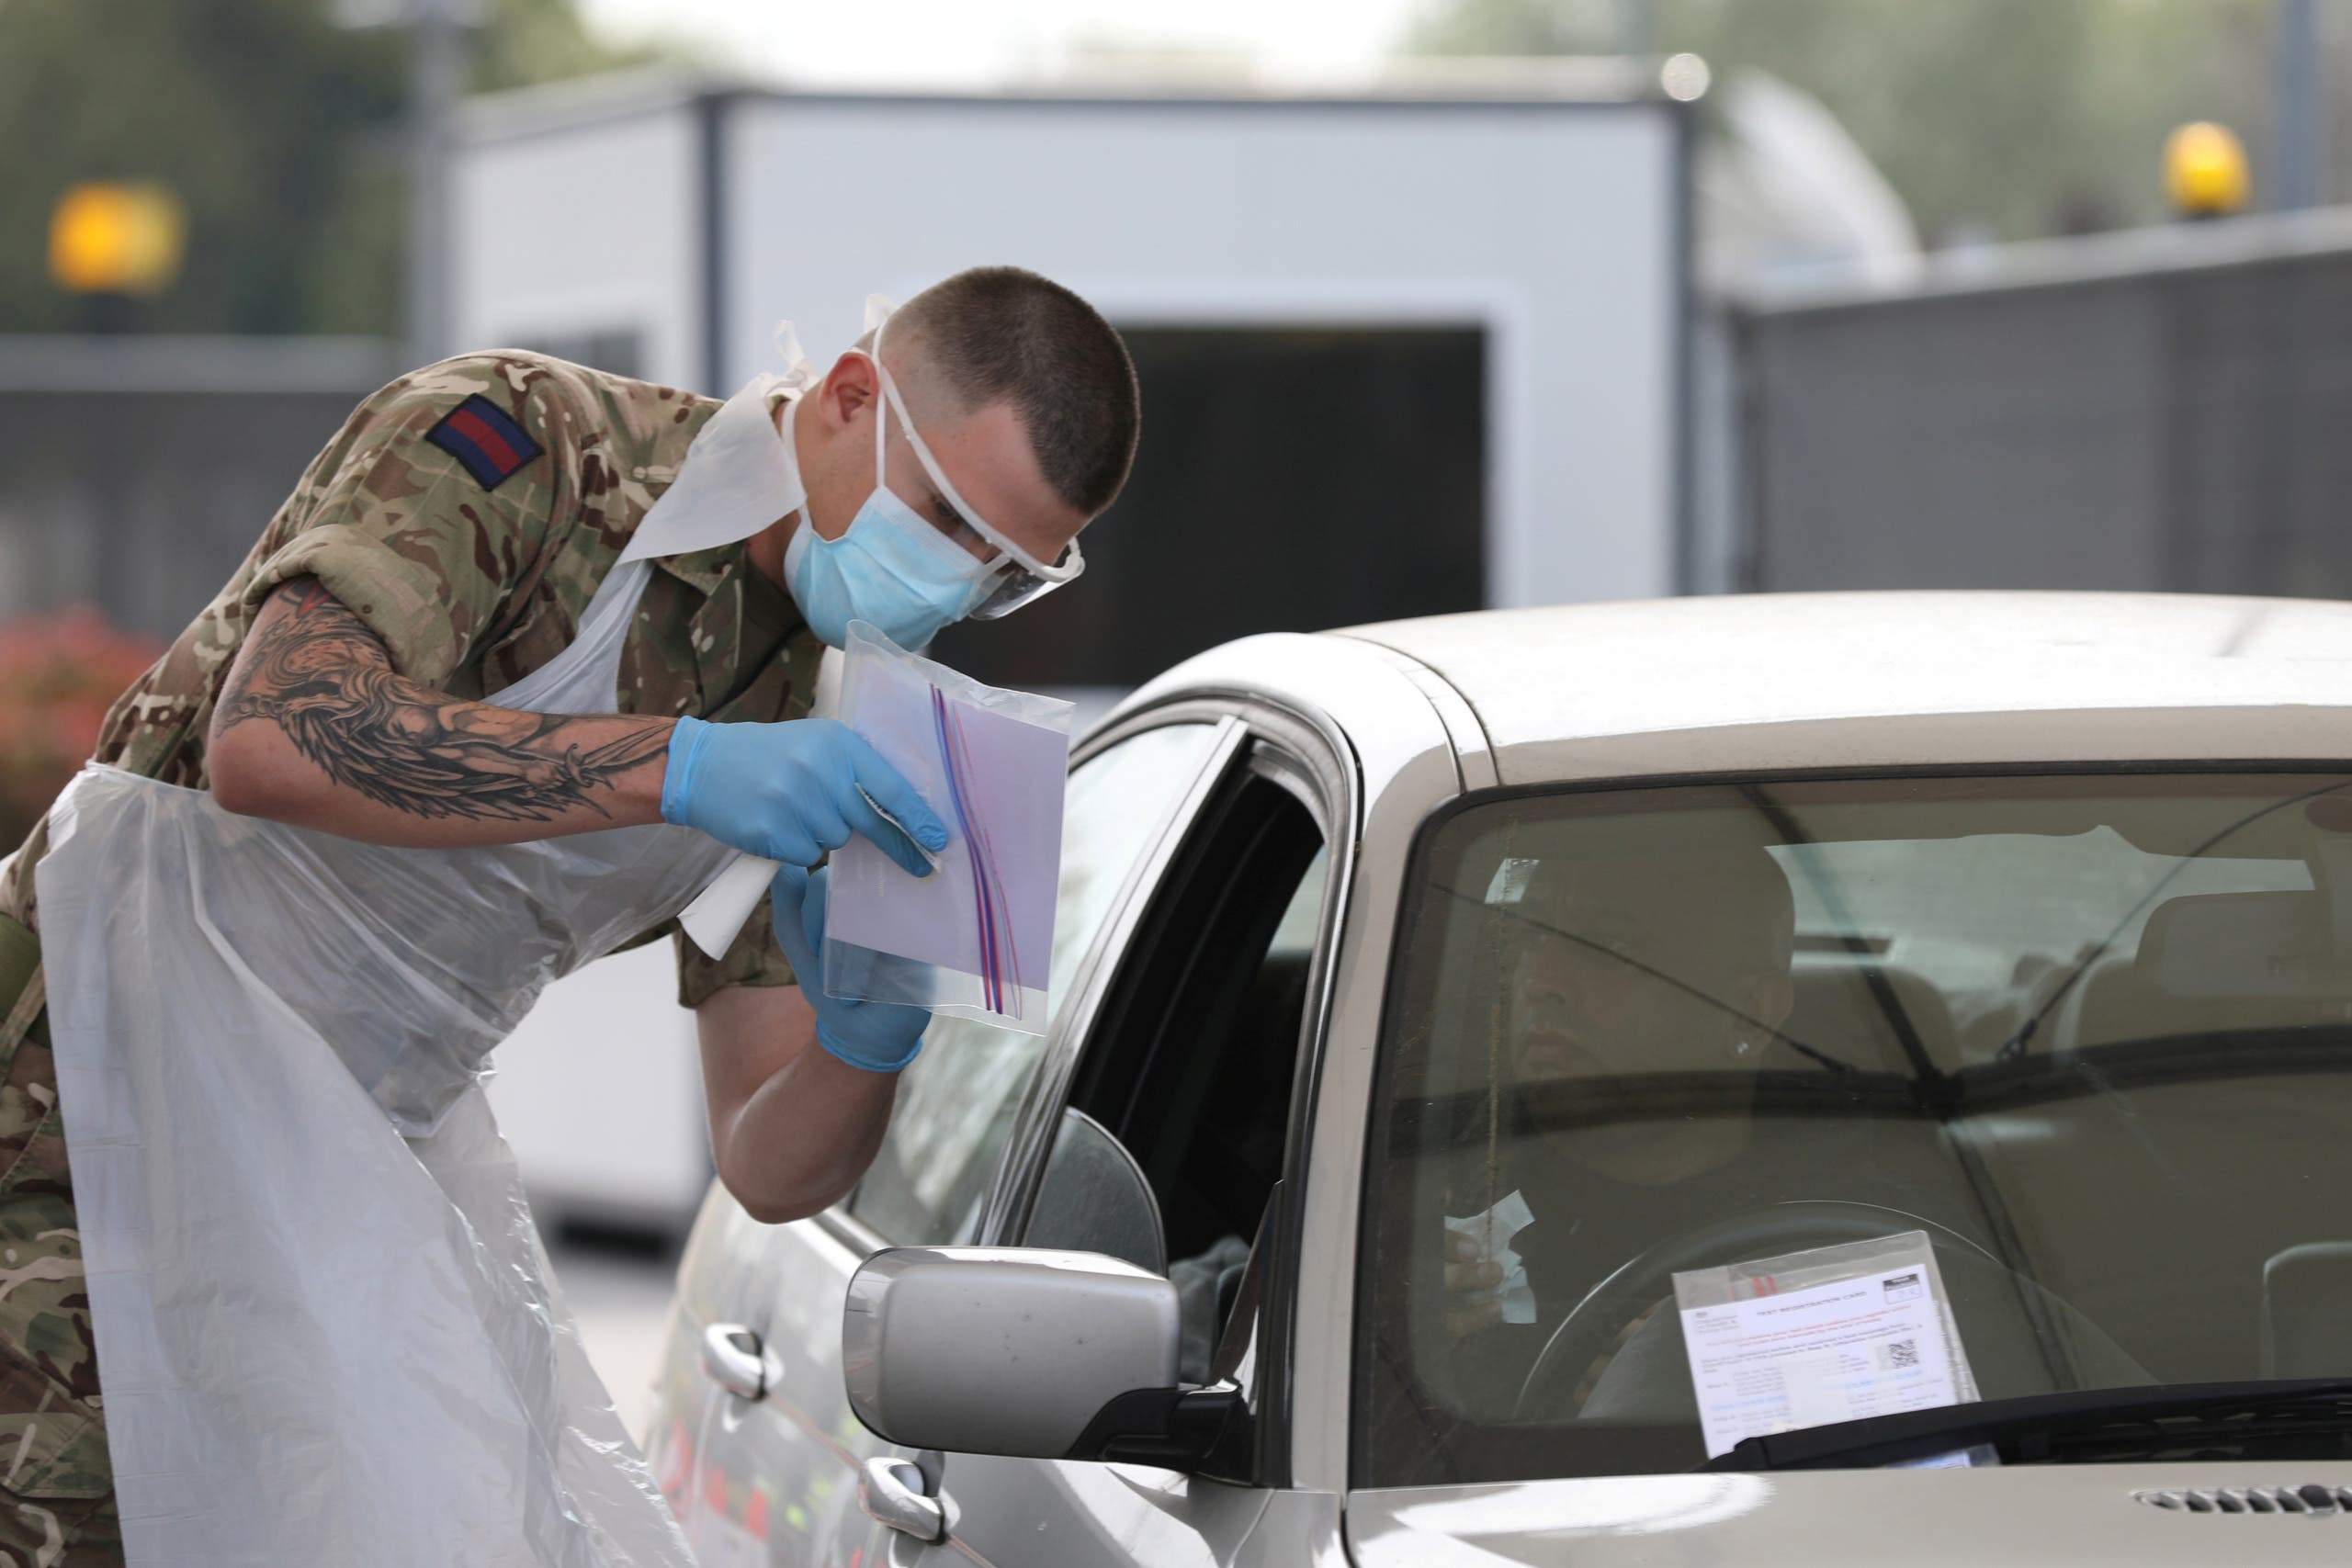 A soldier helps conducting COVID-19 testing for NHS key workers at a testing site in Wembley, London, amid the coronavirus disease (COVID-19) outbreak in Britain, April 16, 2020.